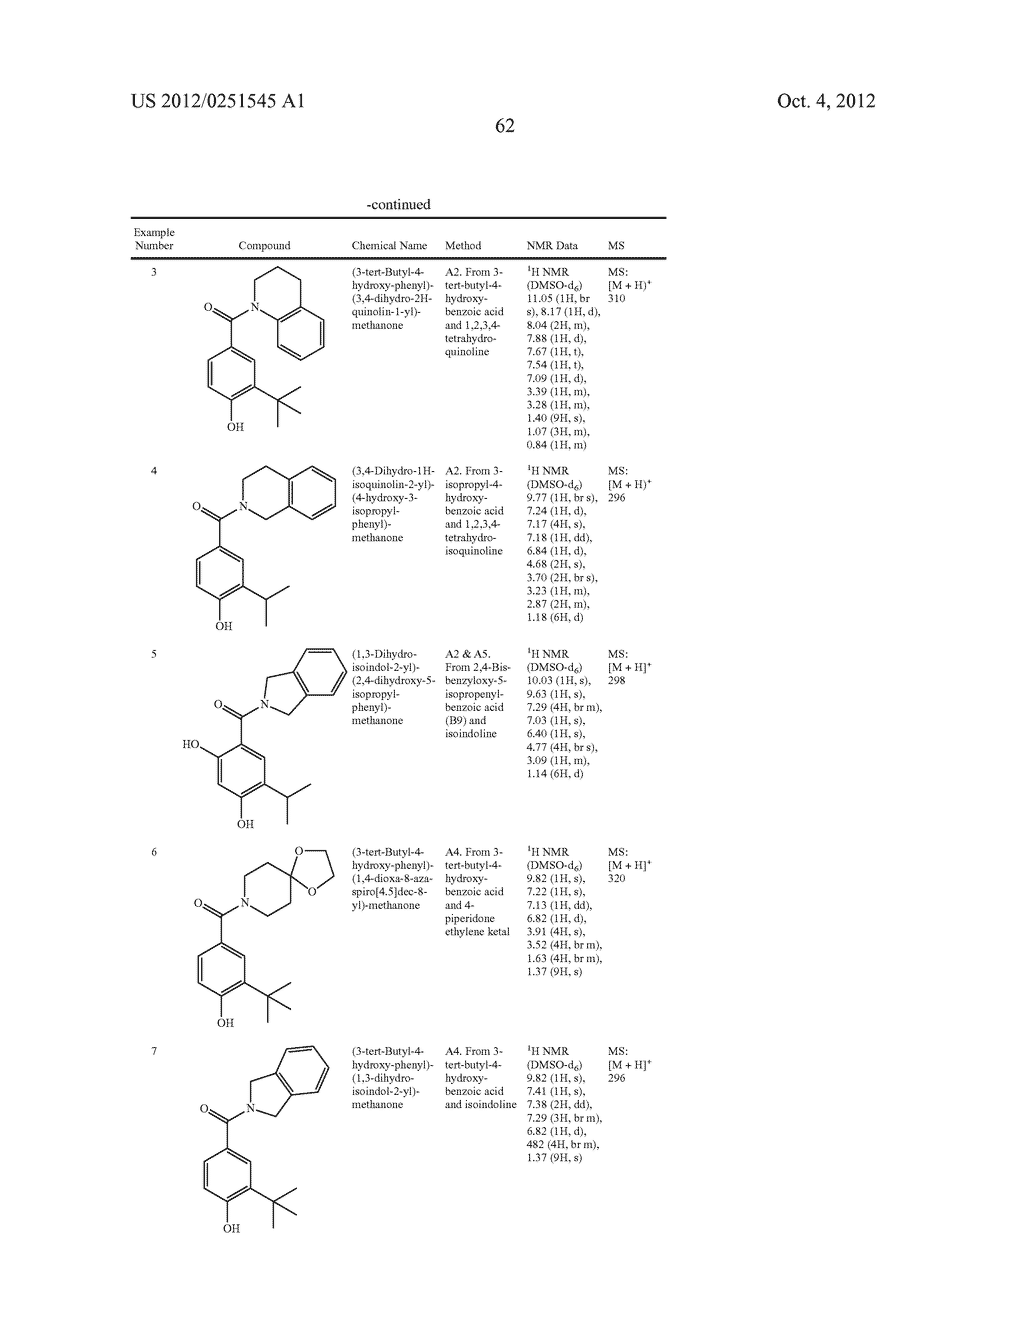 Therapeutic Combinations Of Hydroxybenzamide Derivatives As Inhibitors Of     HSP90 - diagram, schematic, and image 63